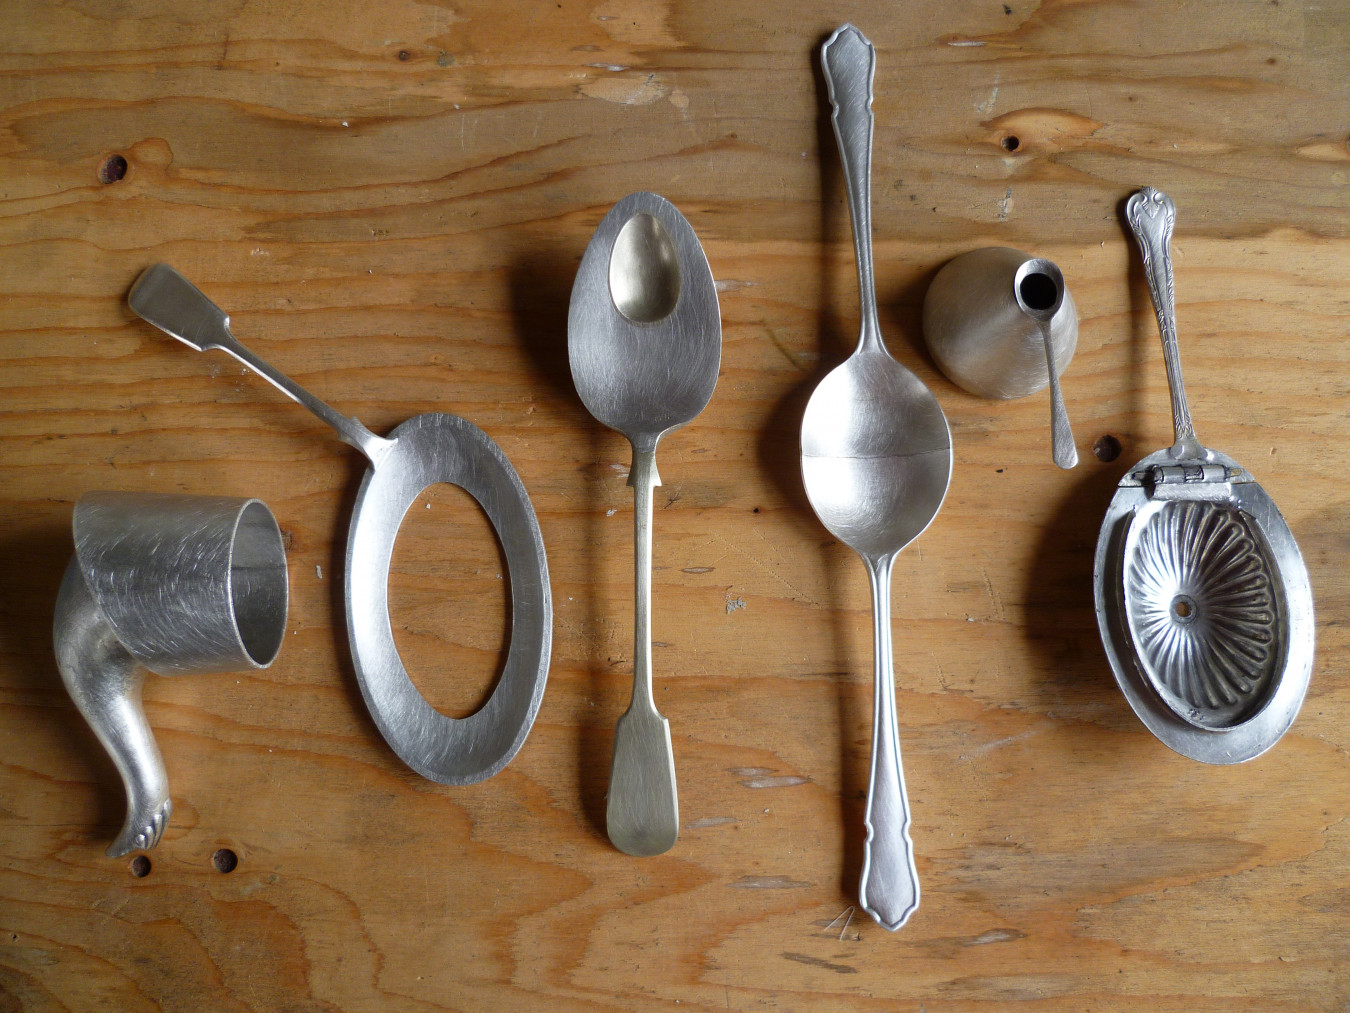 Image showing the collection of spoons